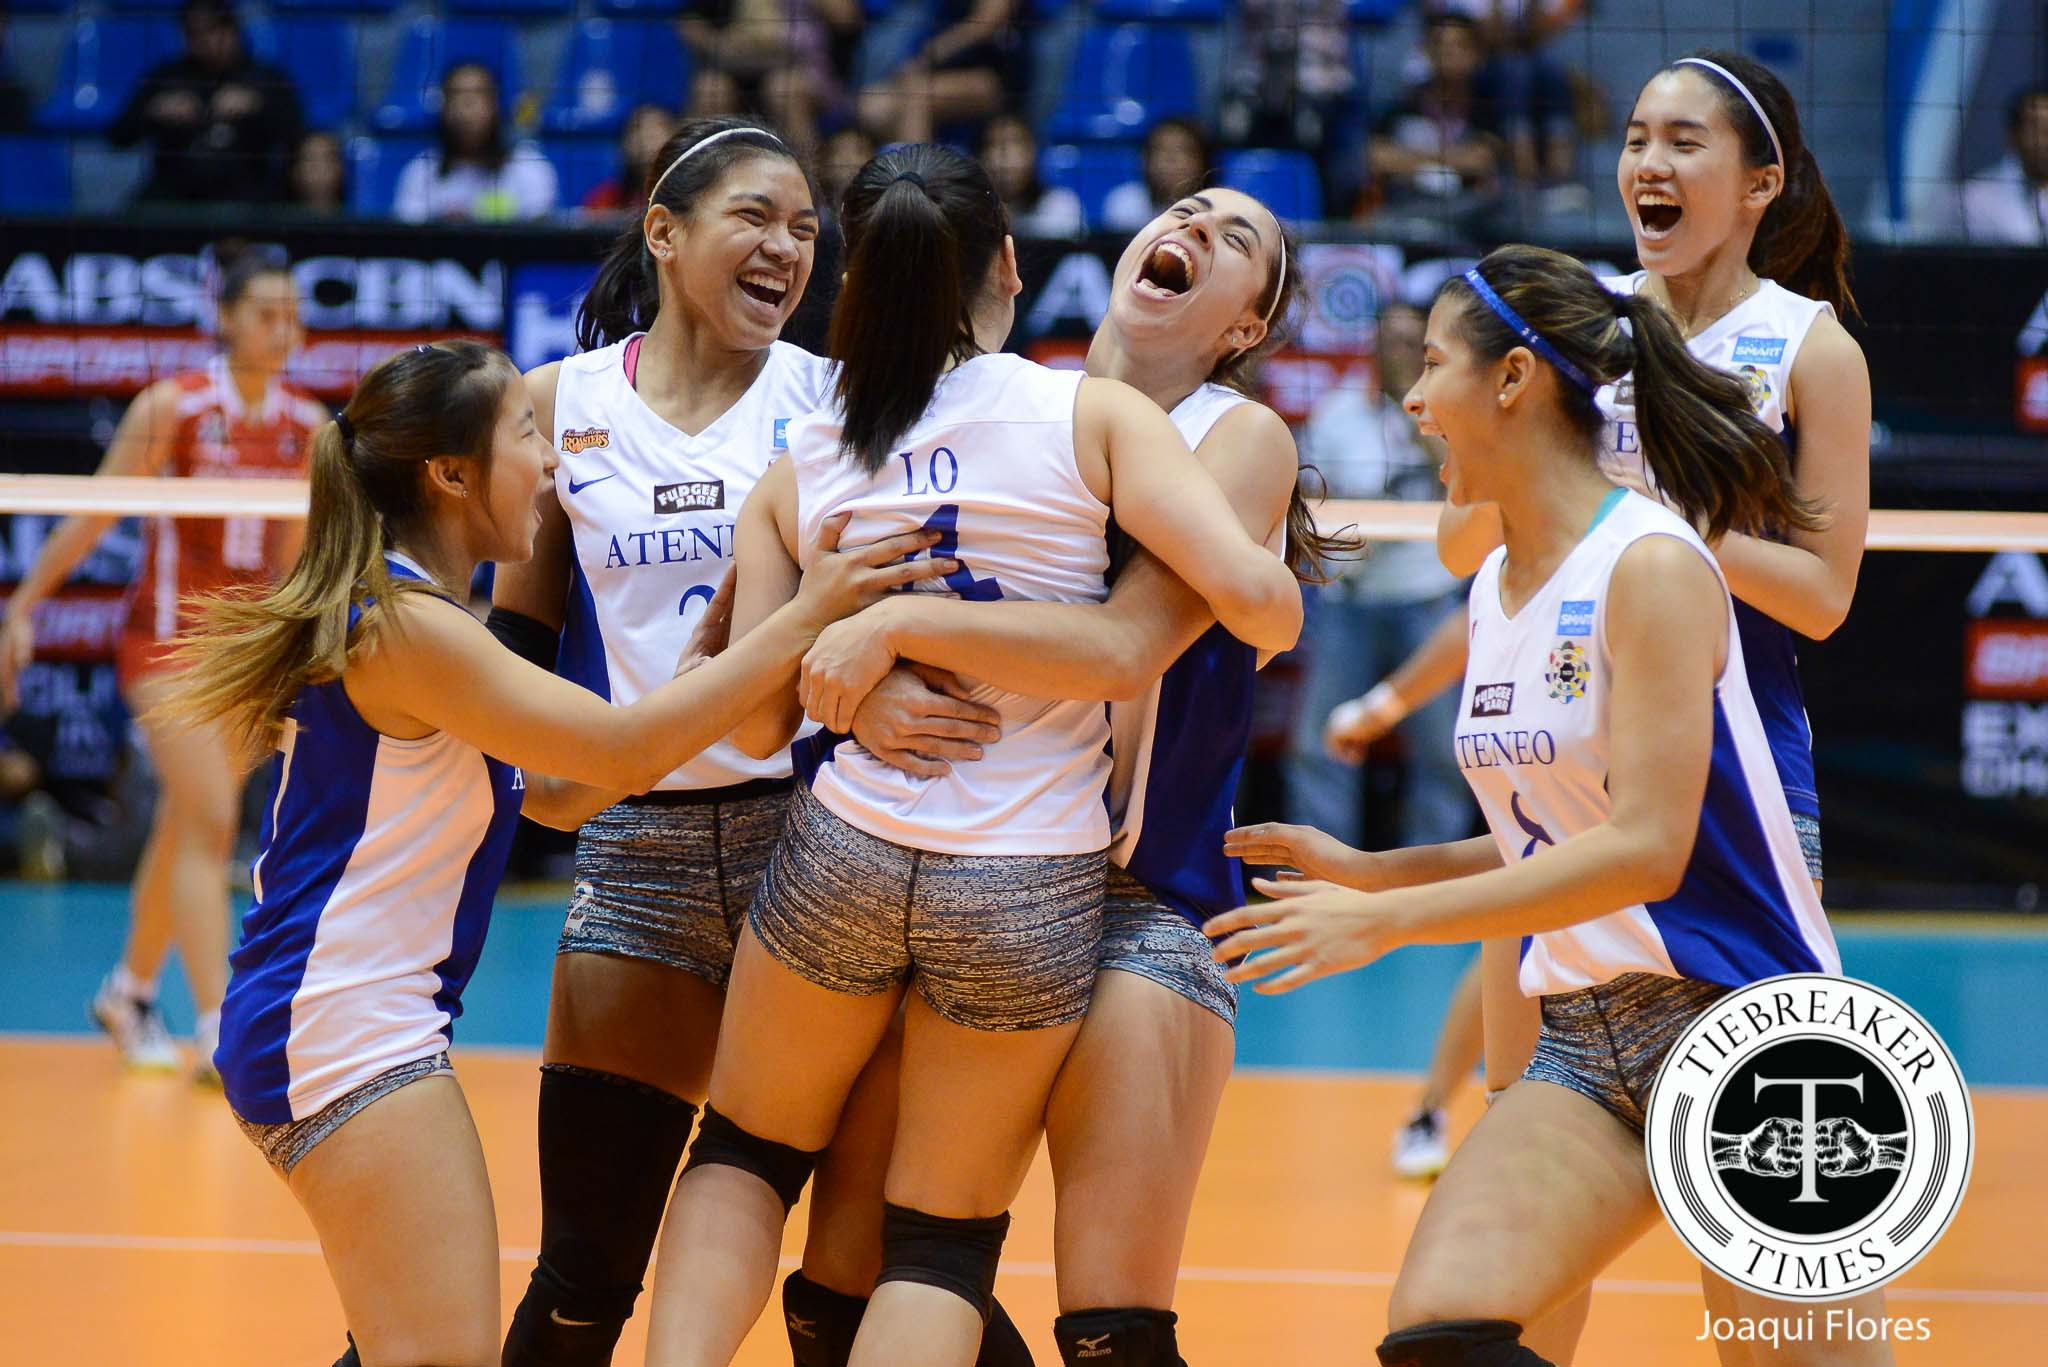 Tiebreaker Times UAAP Season 78 Volleyball Second Round Schedule ADMU AdU DLSU FEU News NU UAAP UE UP UST Volleyball  UST Women's Volleyball UP Women's Volleyball UE Women's Volleyball UAAP Season 78 Women's Volleyball UAAP Season 78 NU Women's Volleyball FEU Women's Volleyball DLSU Women's Volleyball Ateneo Women's Volleyball AdU Women's Volleyball